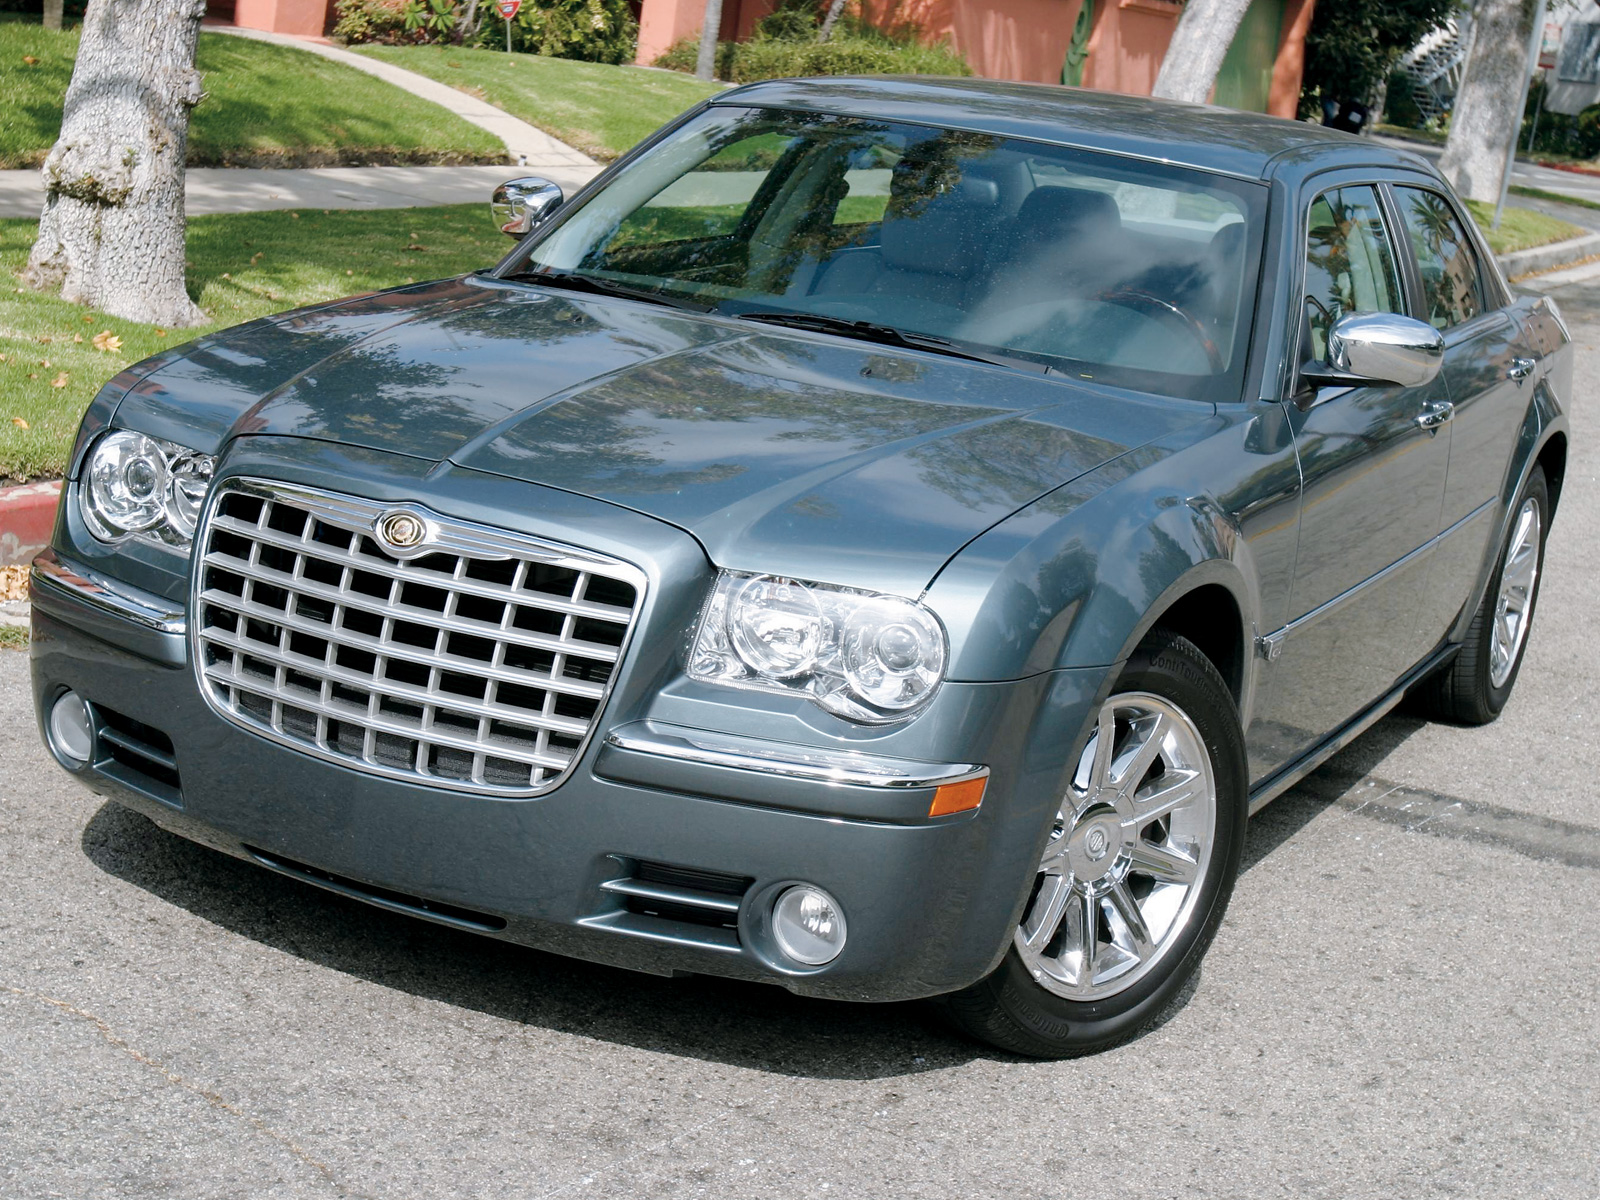 2005 Chrysler 300 #2